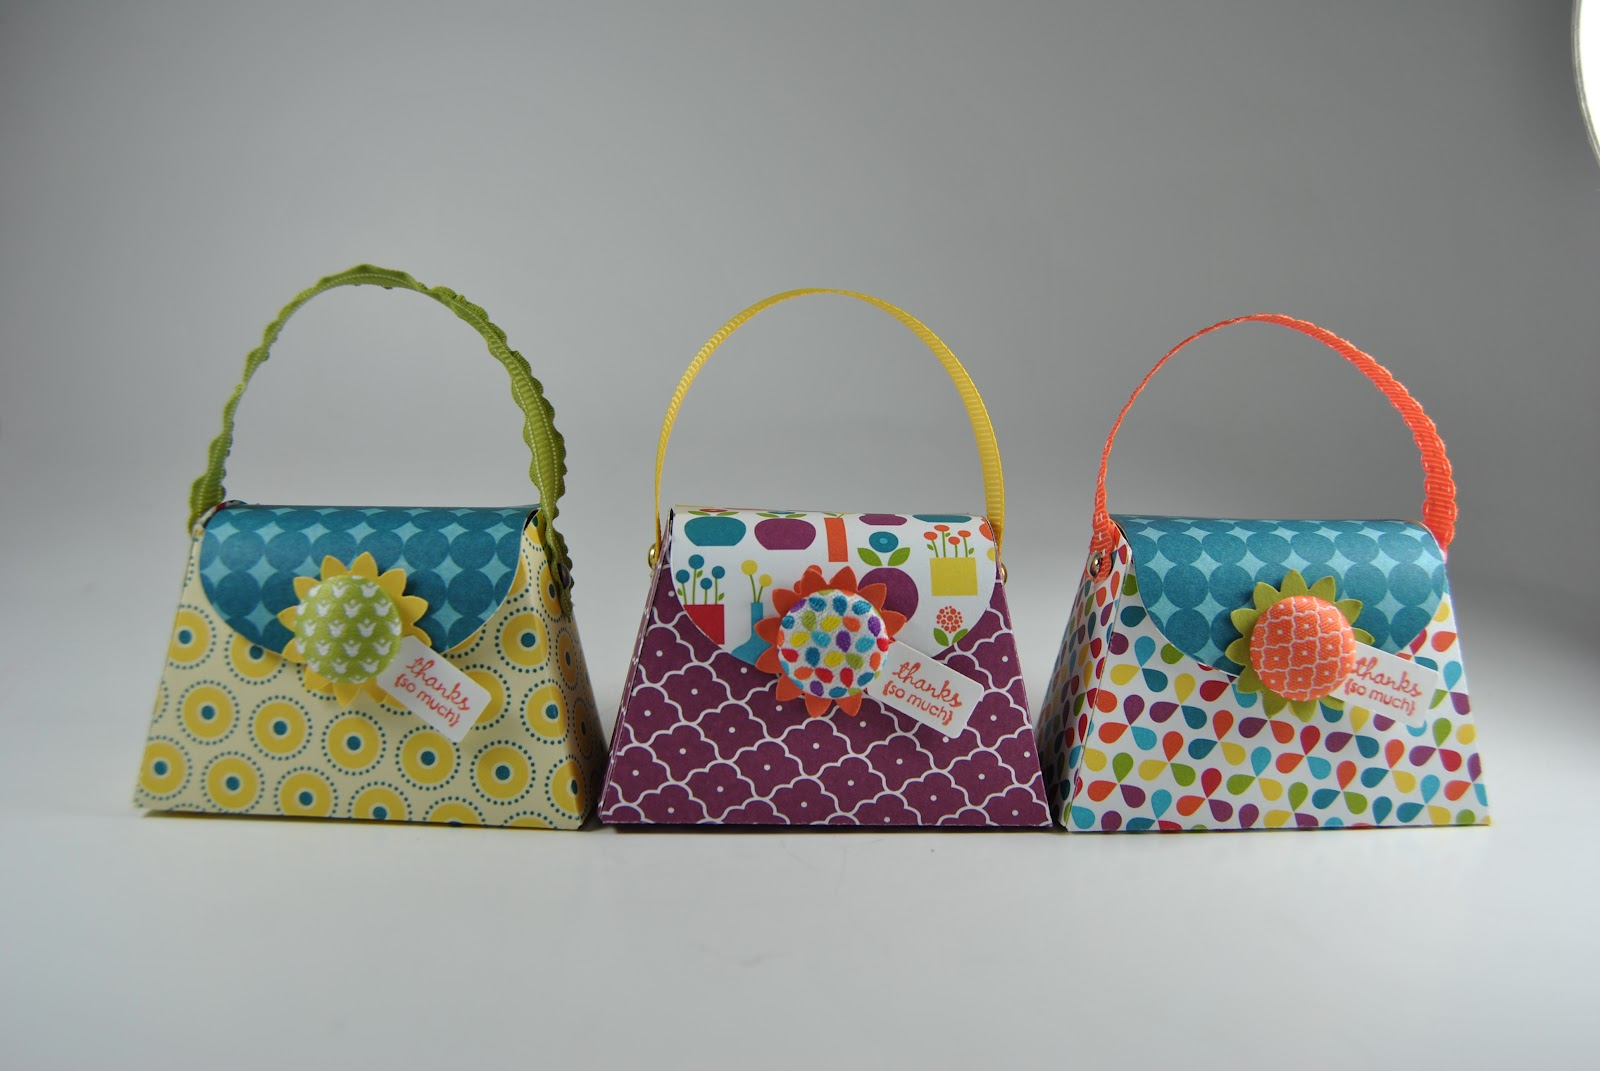 Handbag Parties Submited Images